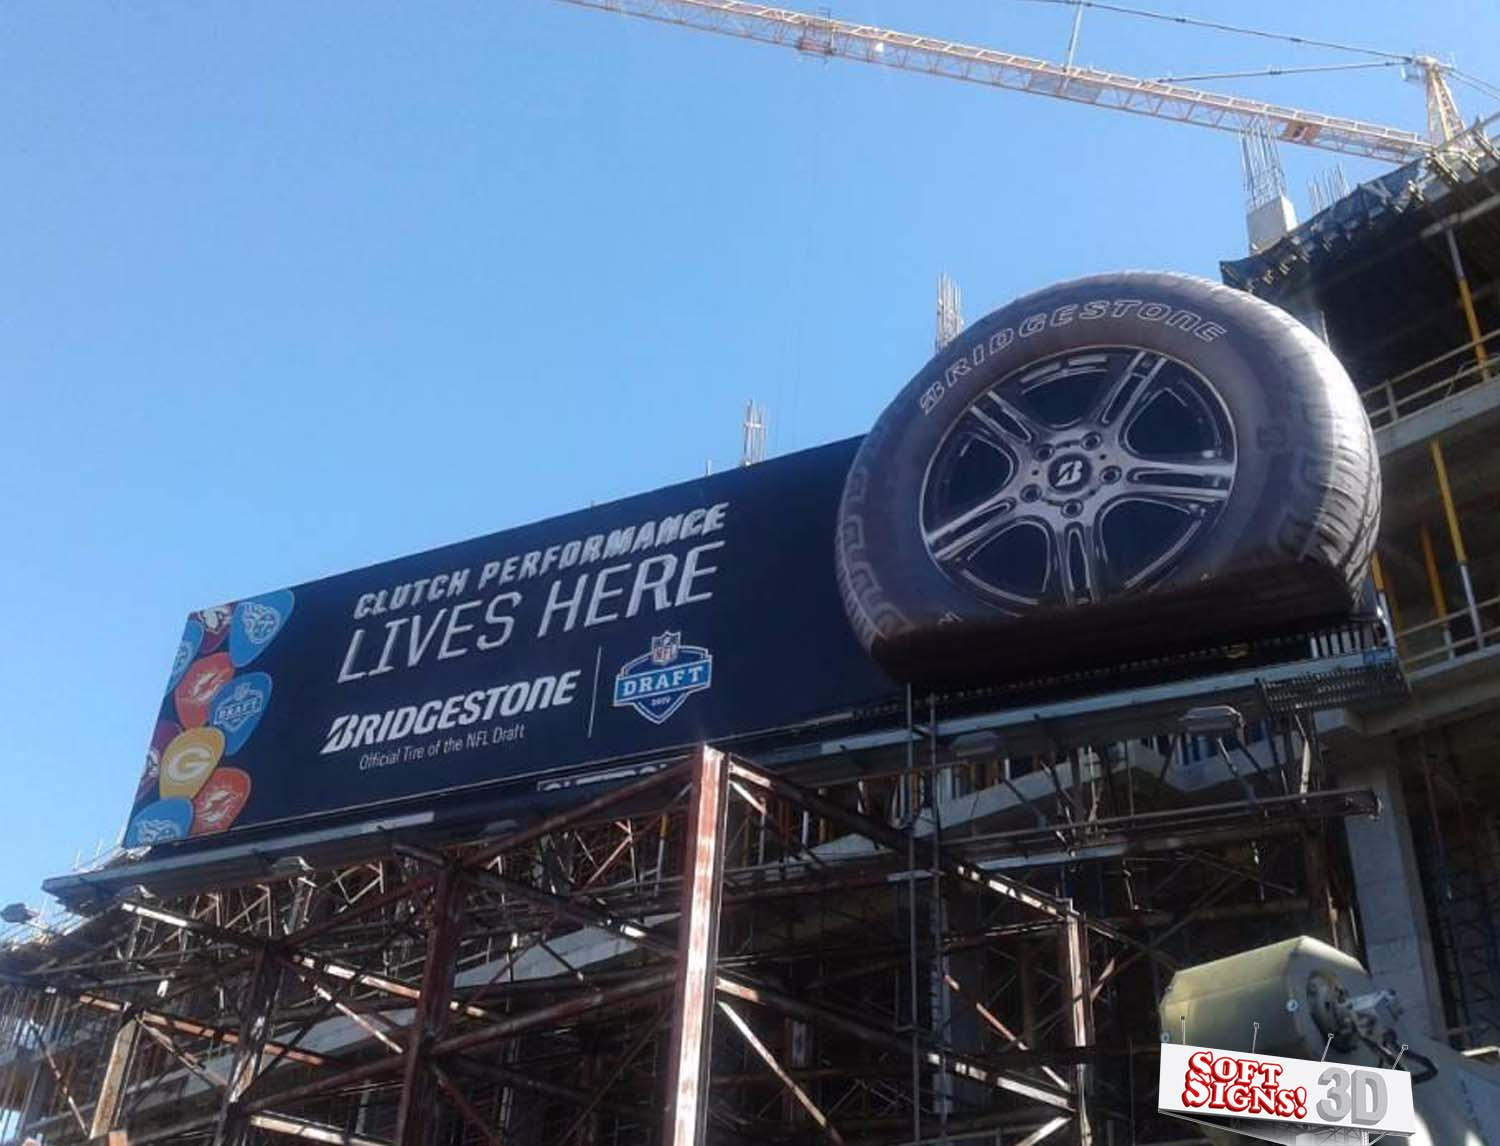 Bridgestone Tire 3D Vinyl Billboard by Soft Signs 3D